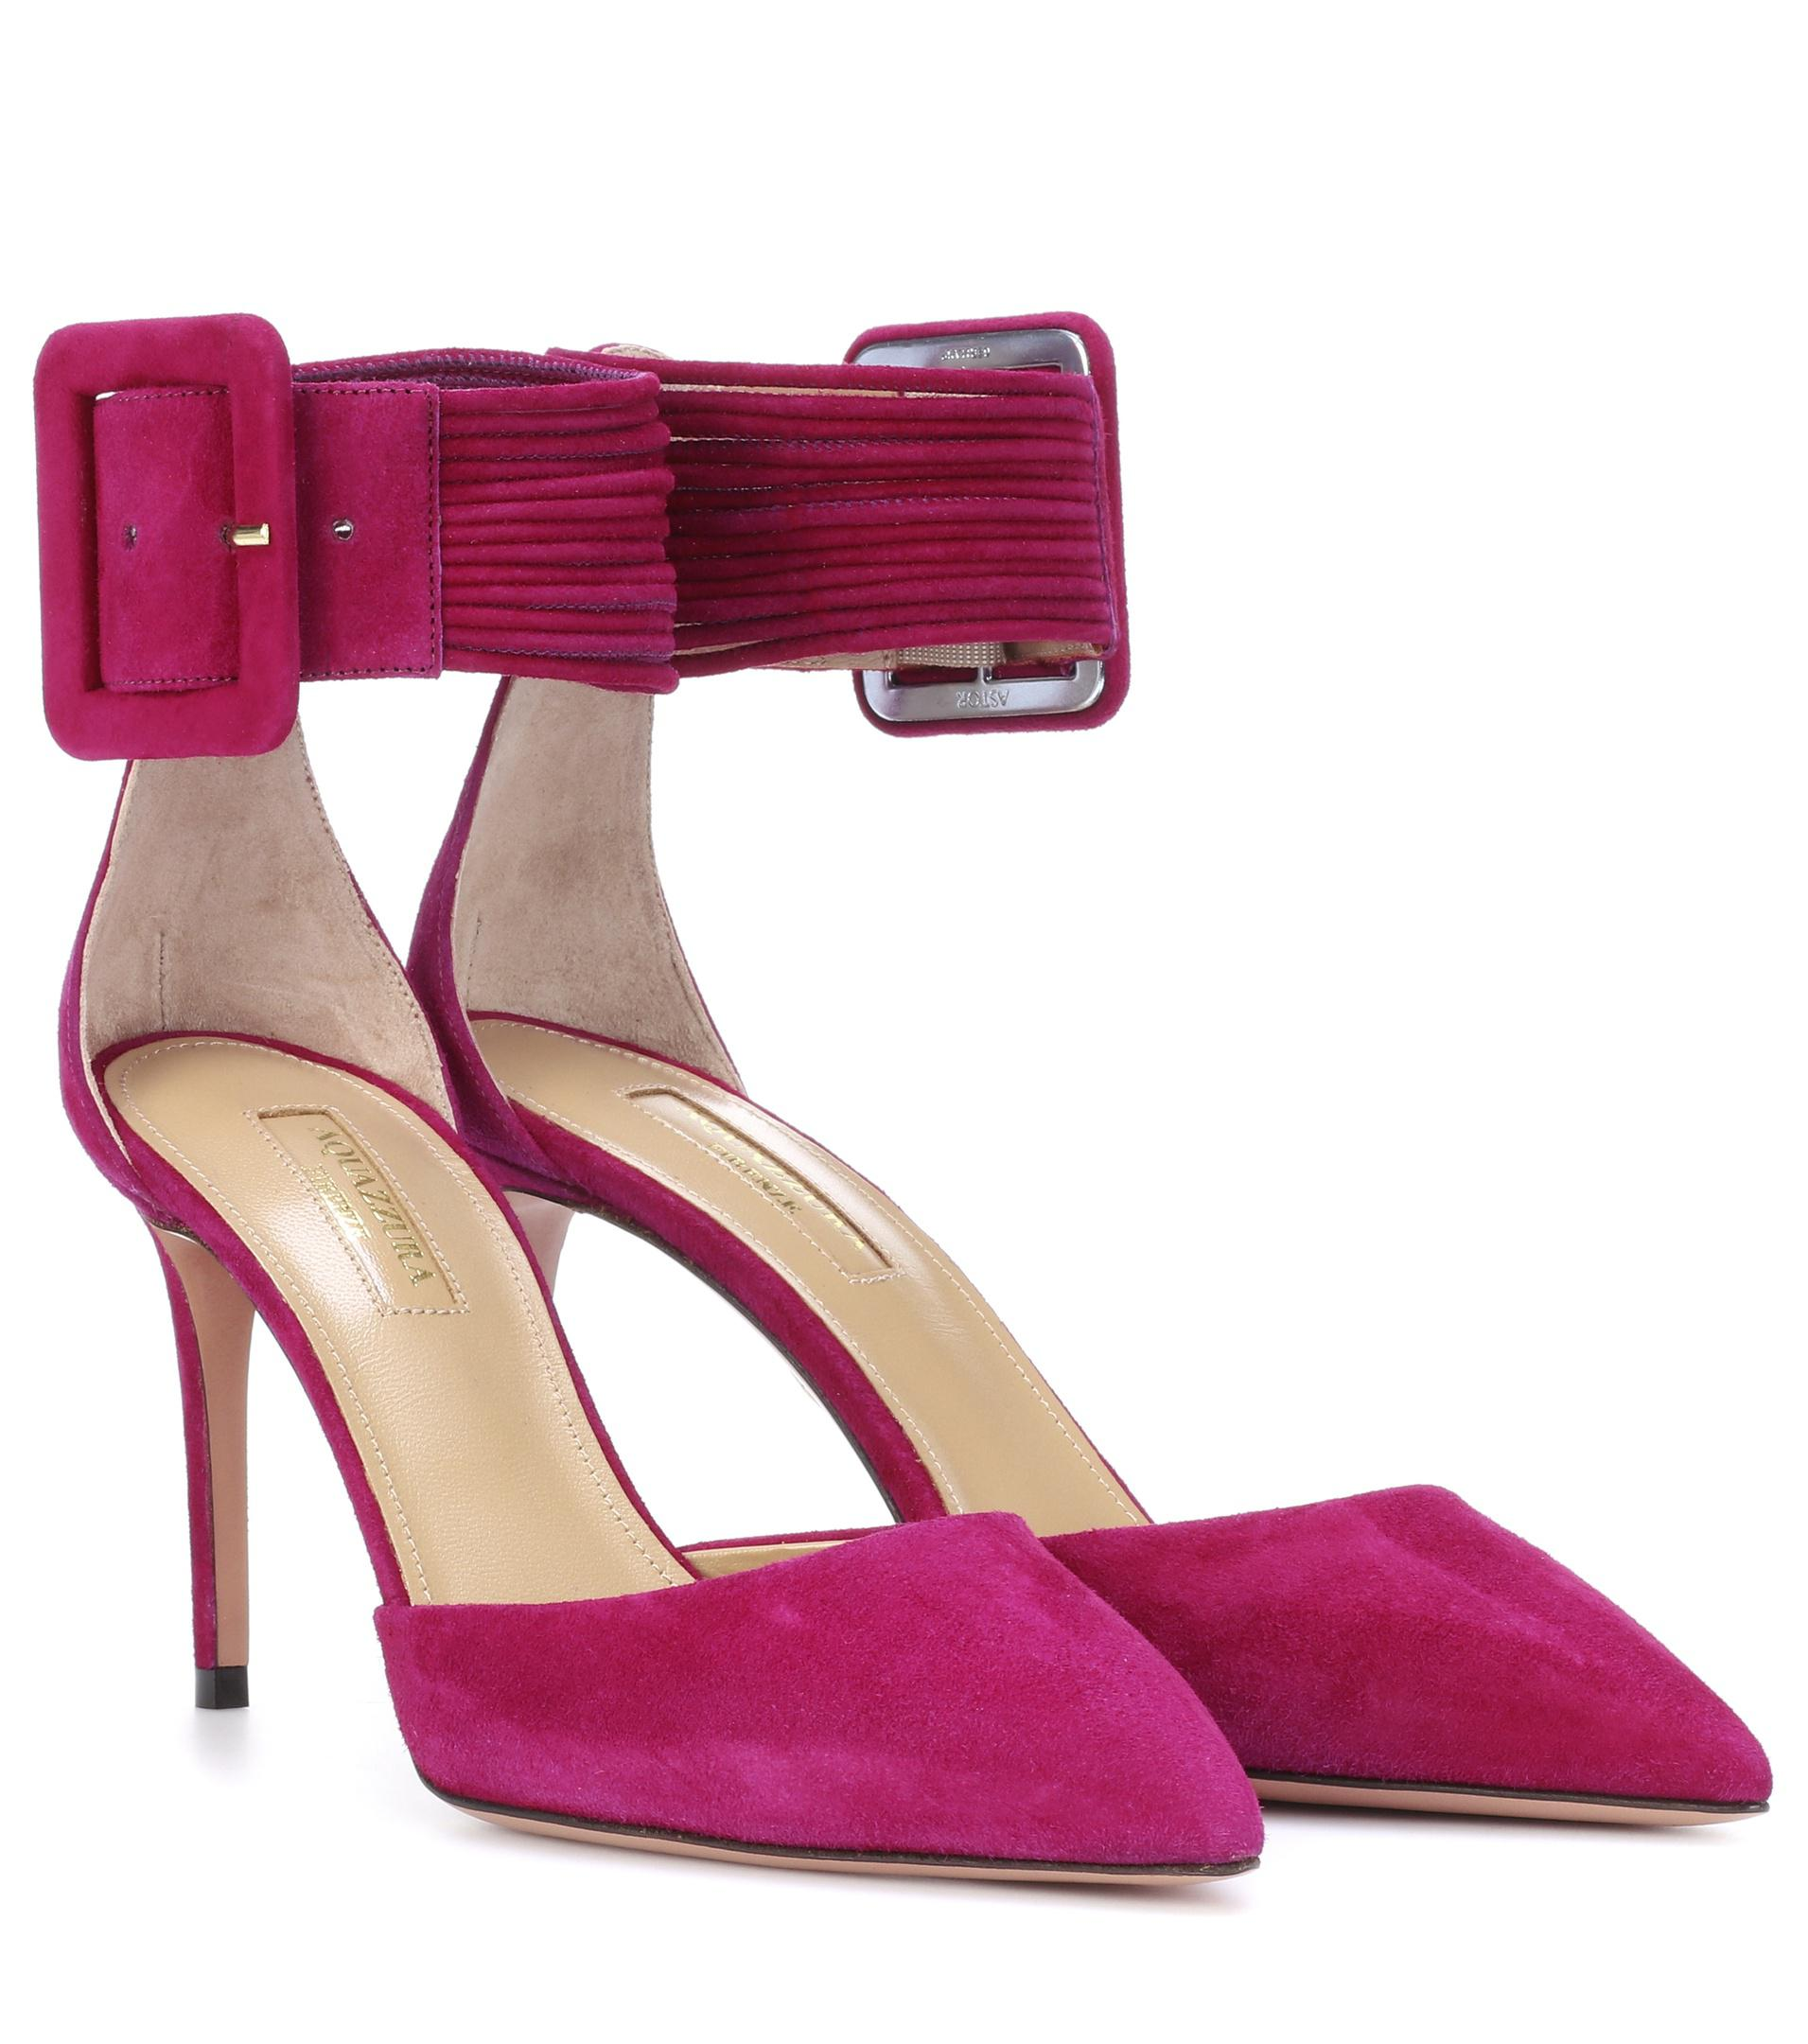 Shop Offer For Sale Aquazzura Casablanca 85 suede pumps Looking For Sale Online Big Sale Sale Online Sale Shop 9boEF